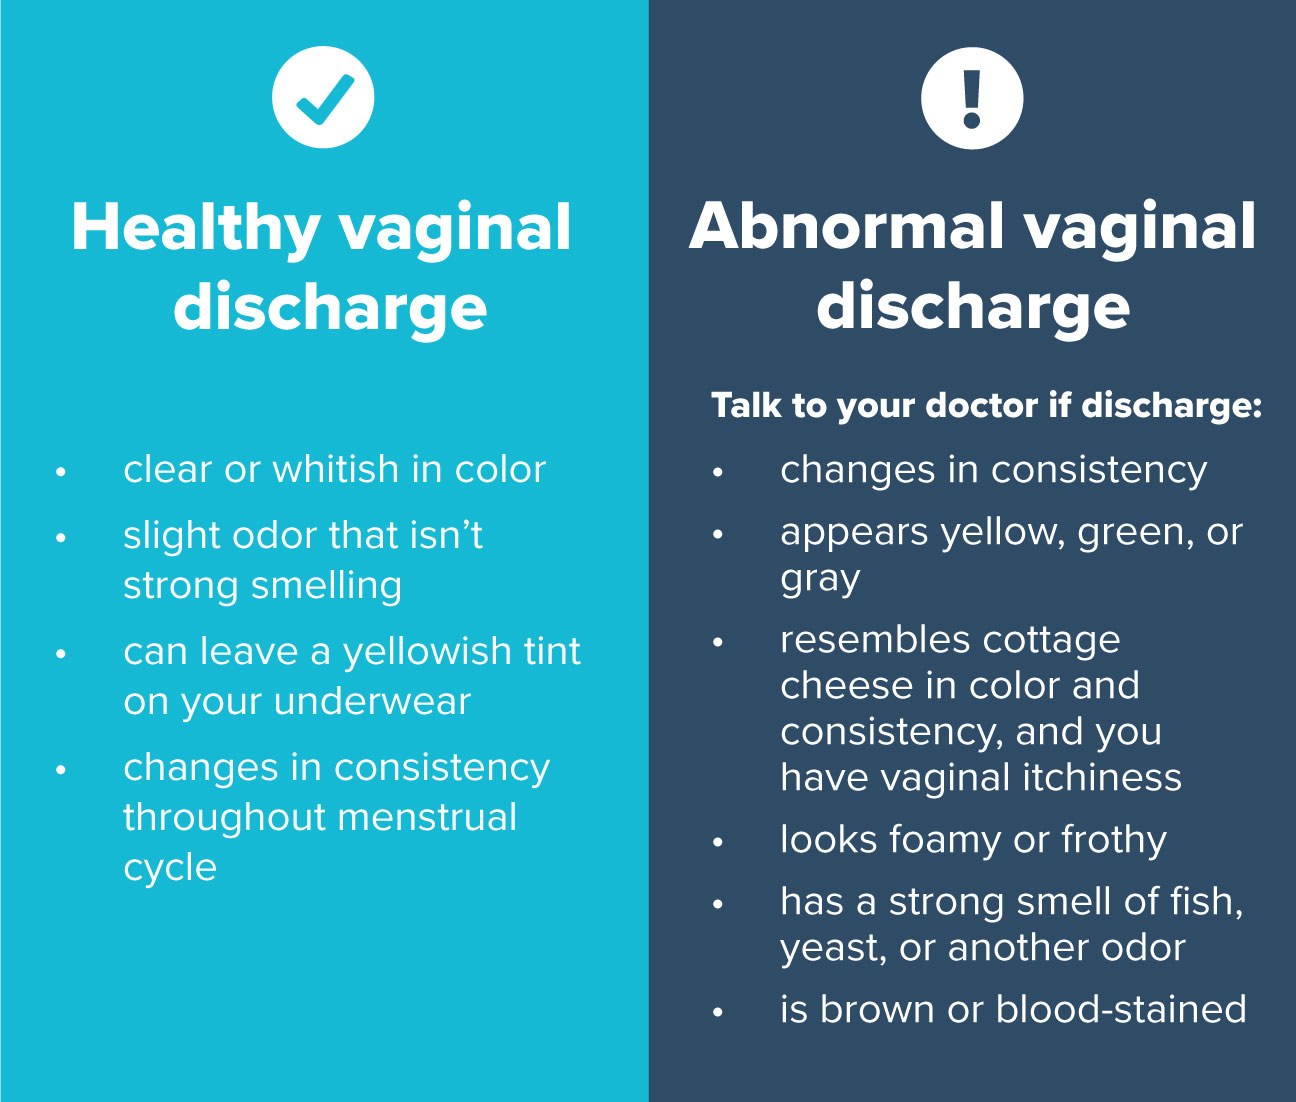 fluid vaginal discharge that appliance